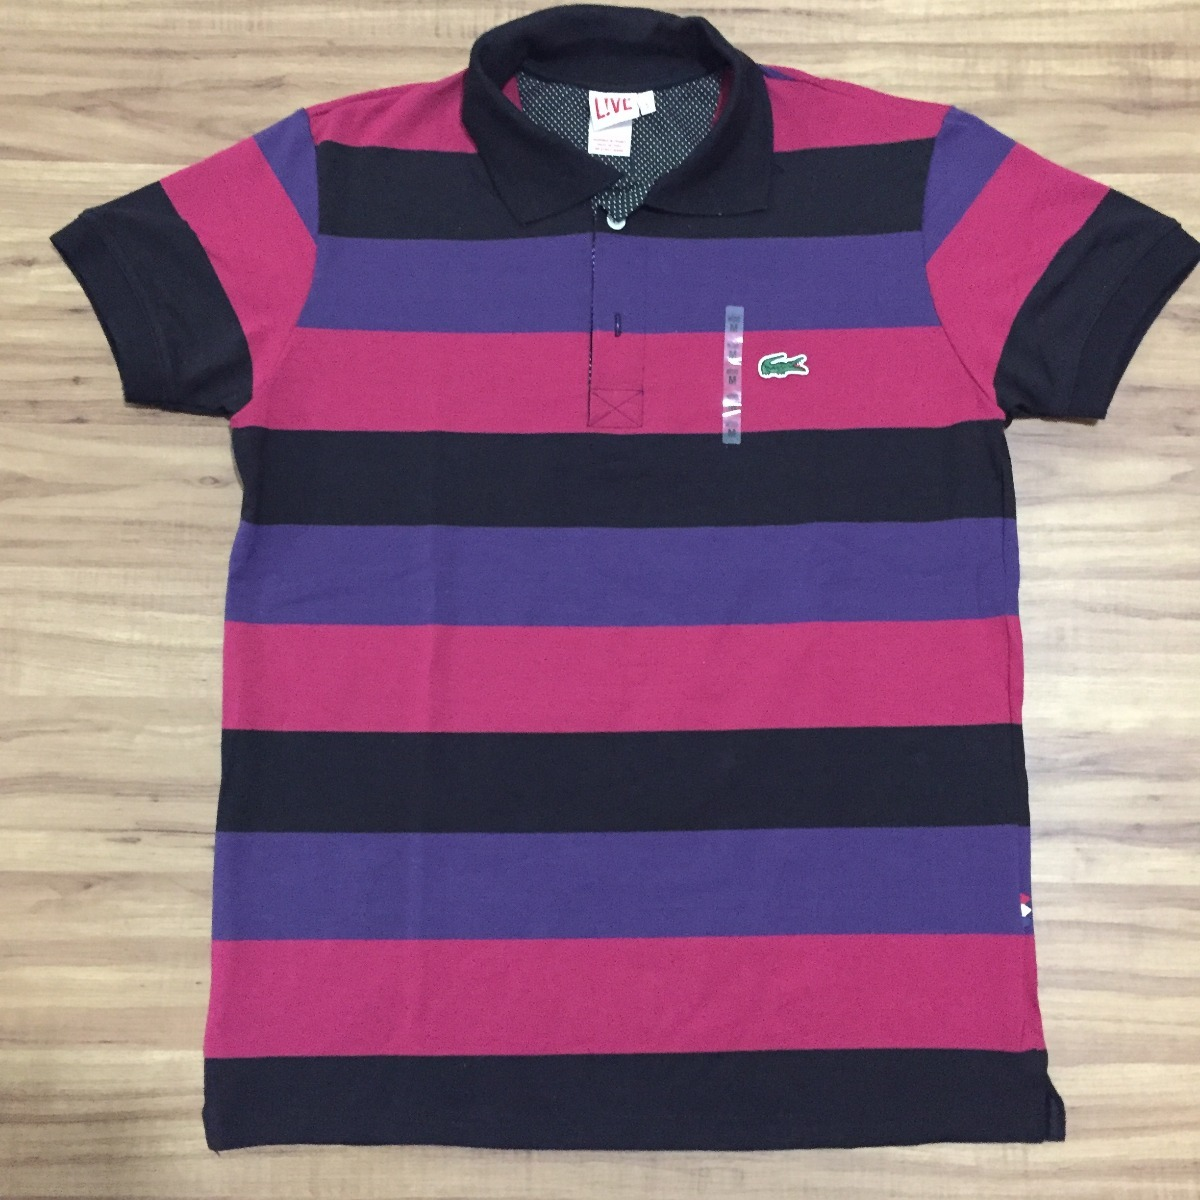 camisa polo lacoste 100% original made in peru lcst live. Carregando zoom. a5a383948fd2f